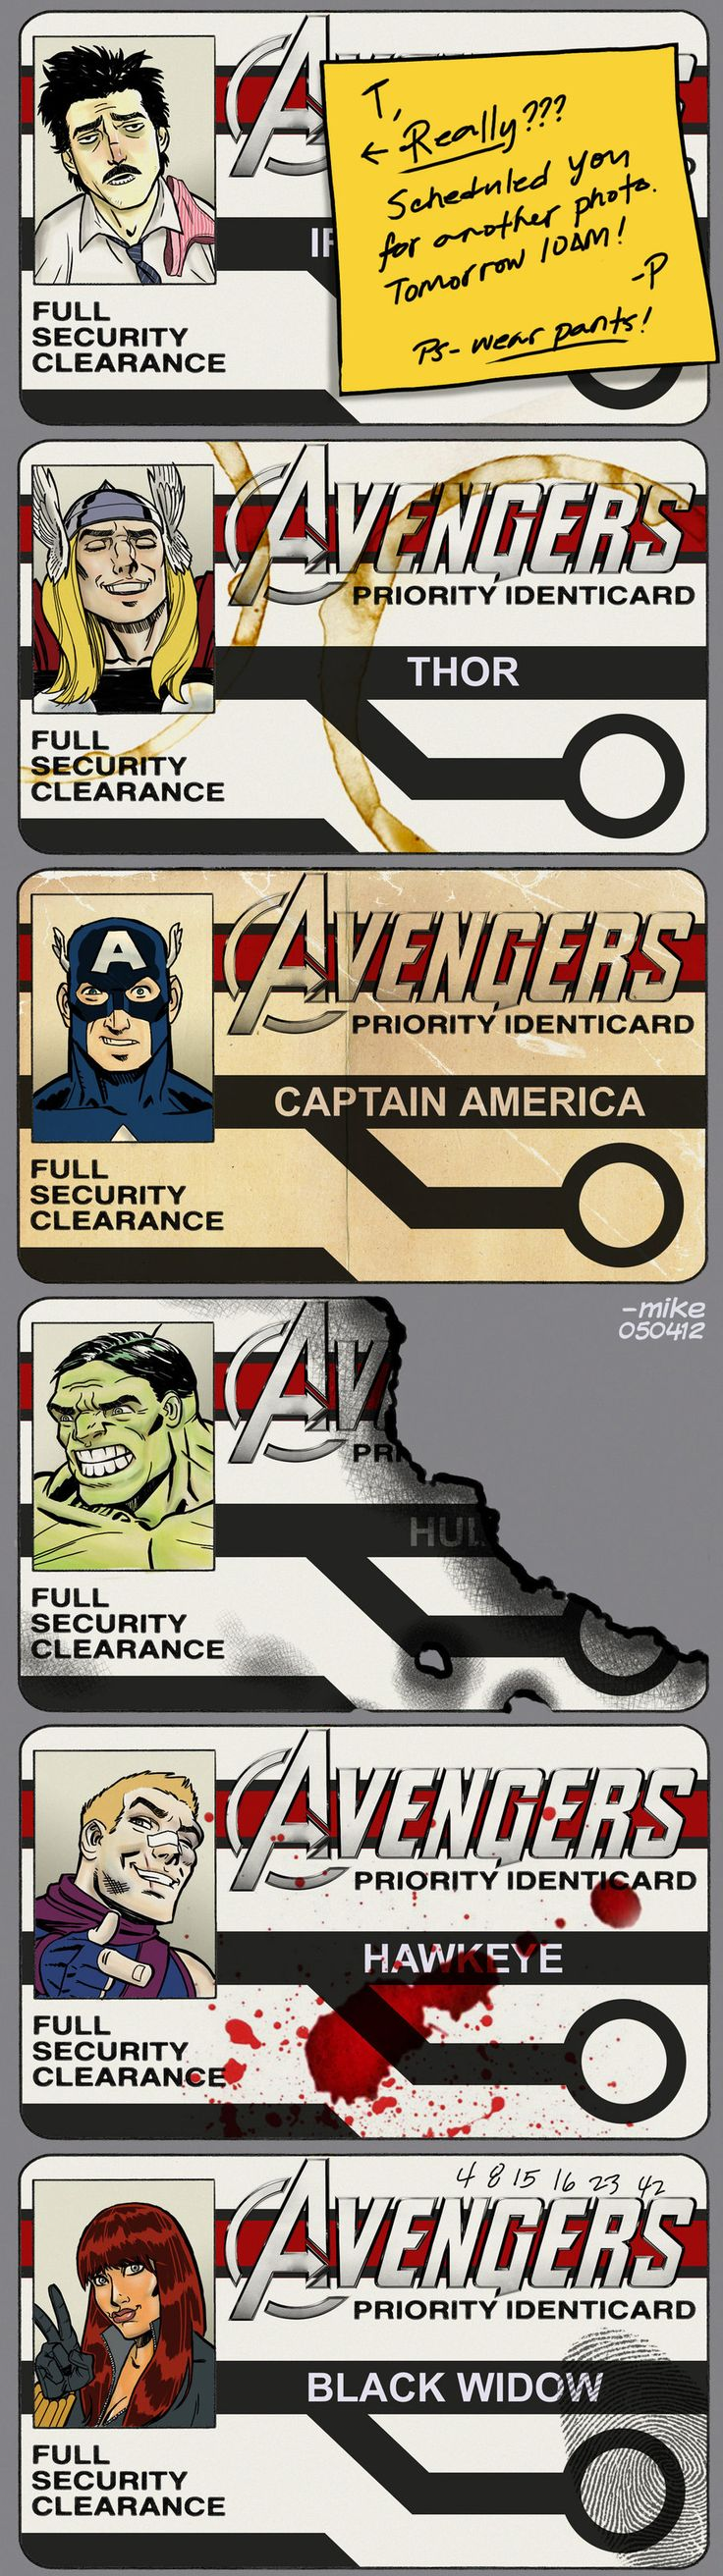 Avengers ID - Did the Hulk brush his hair? And what is up with Cap's face?